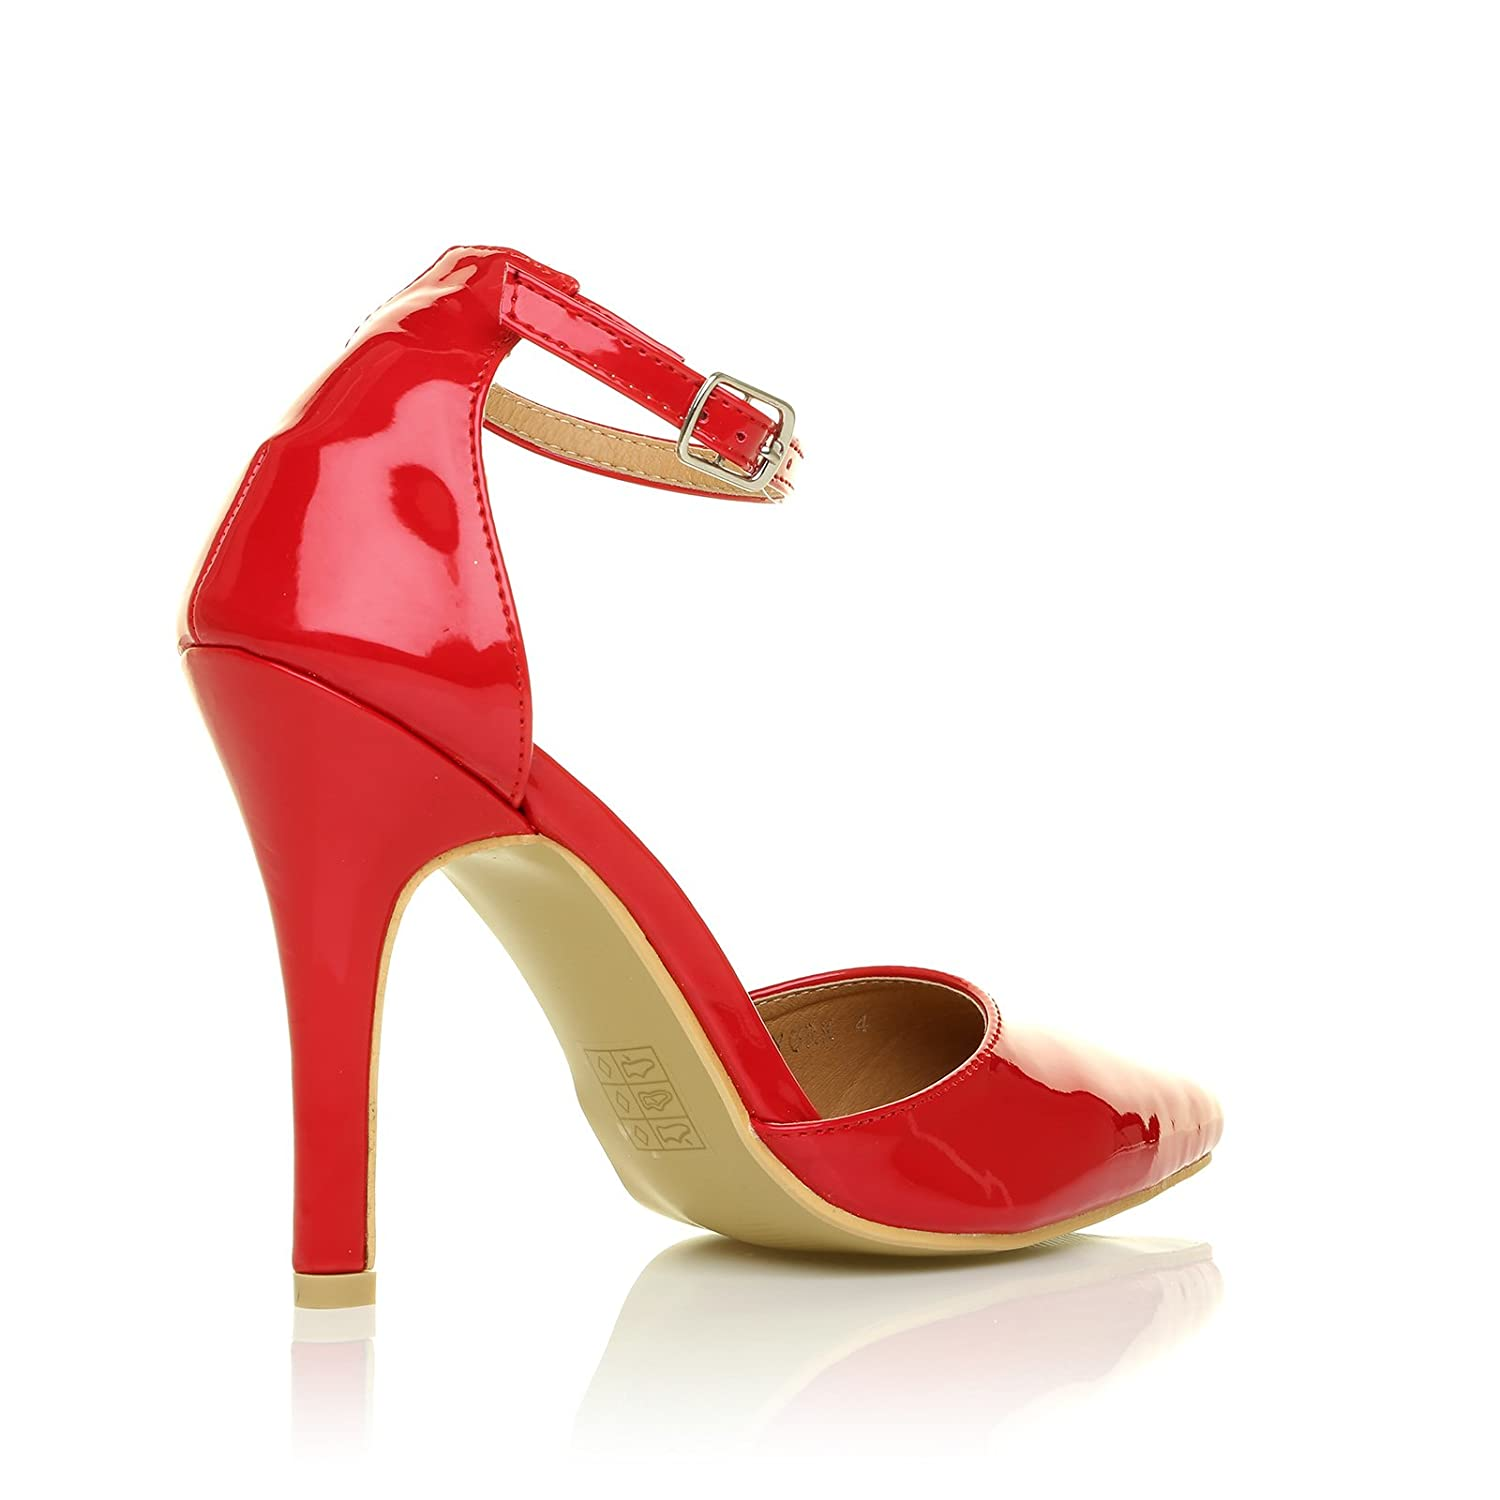 New York Red Patent Ankle Strap Pointed High Heel Court Shoes:  Amazon.co.uk: Shoes & Bags